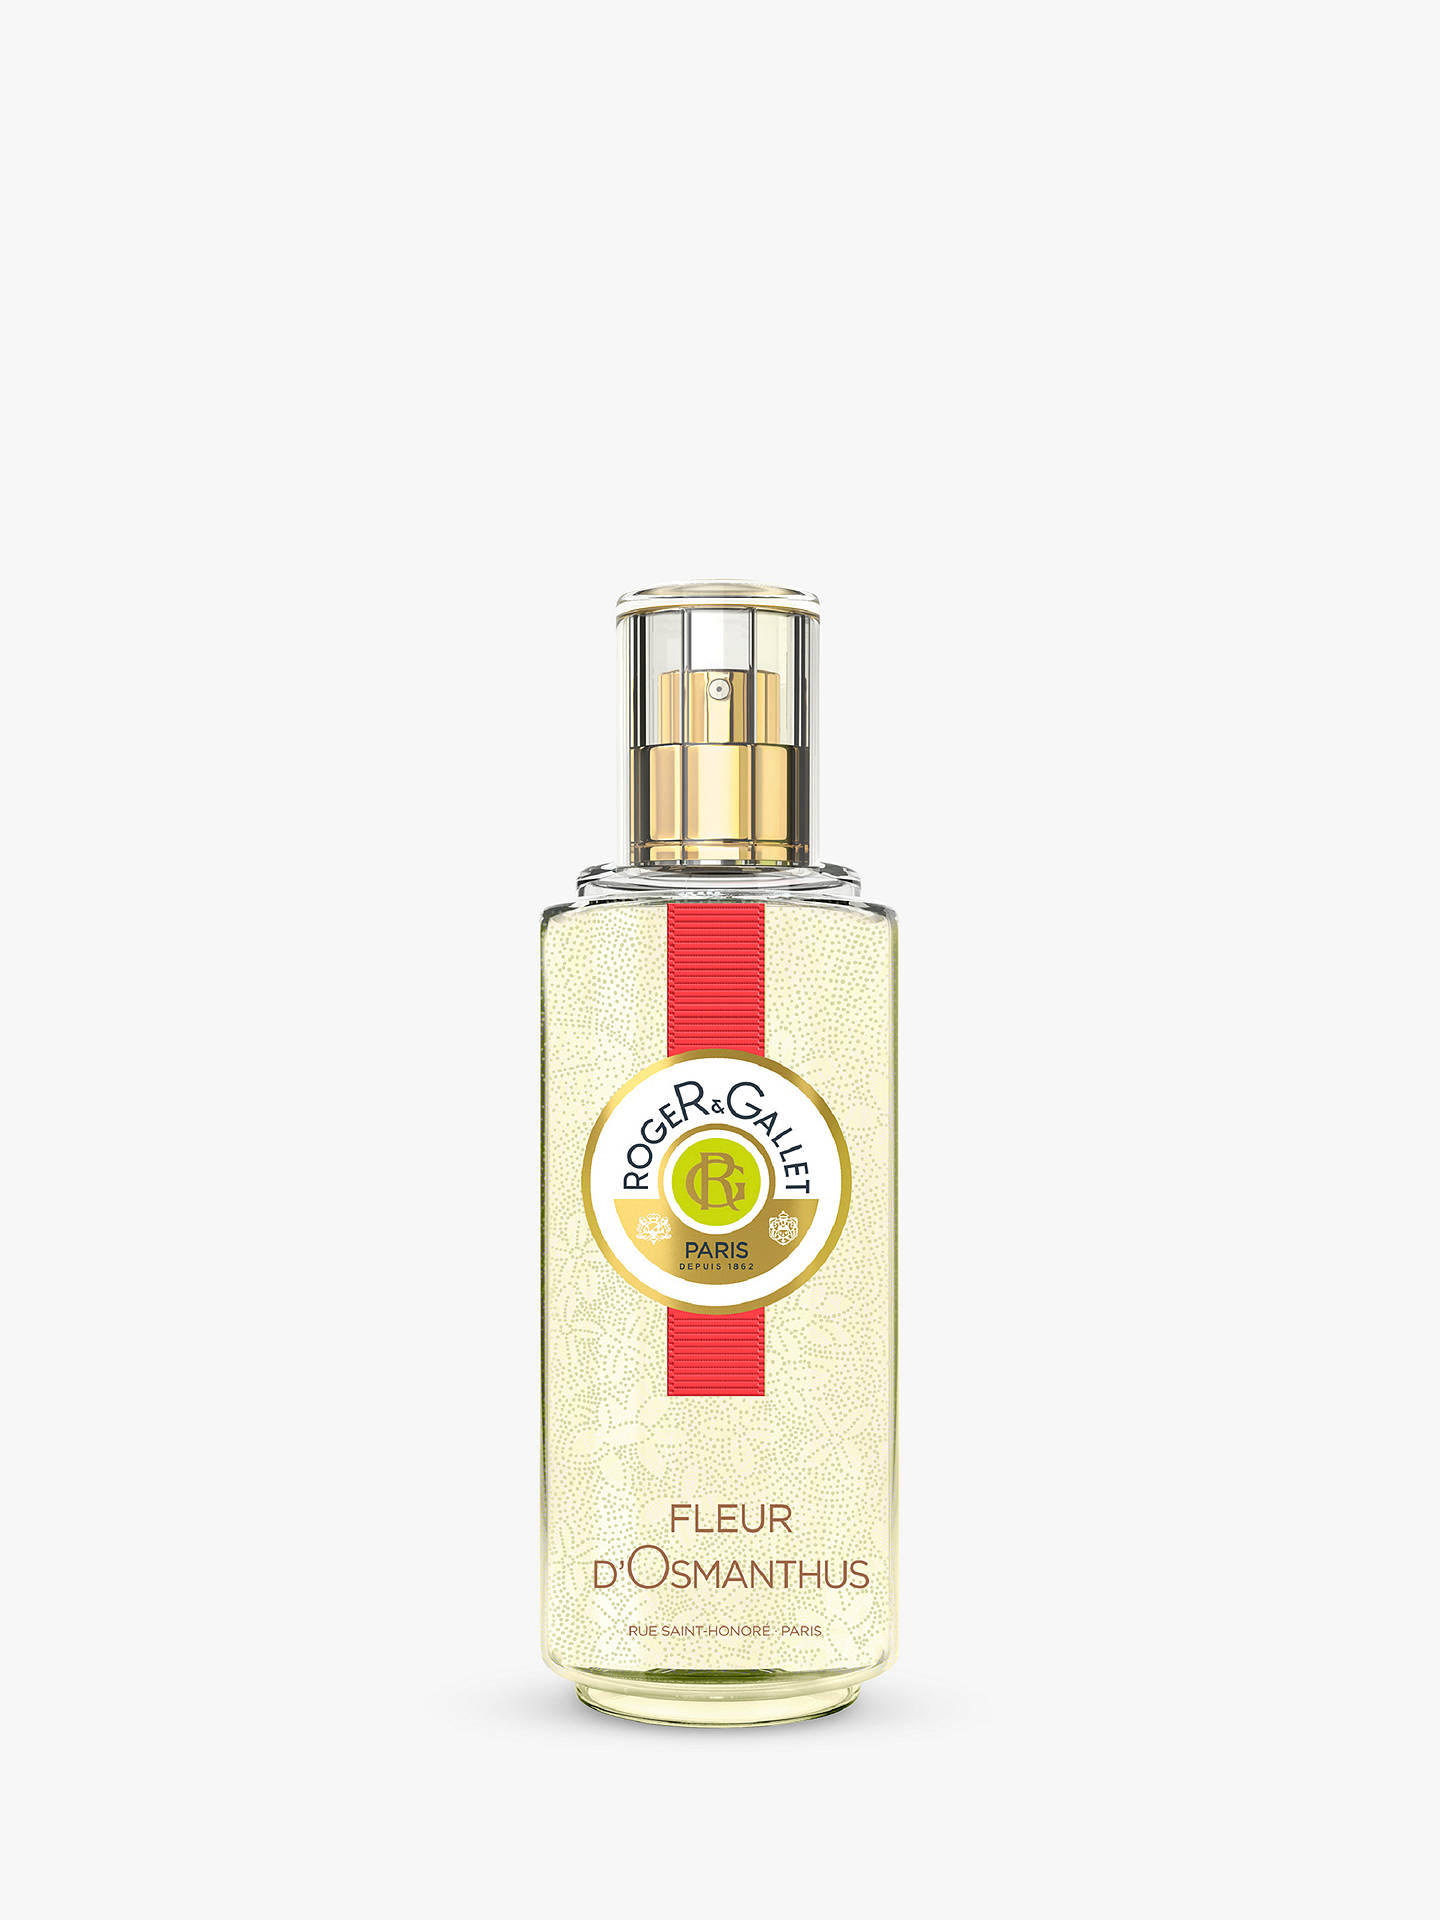 Roger Gallet Fleur D Osmanthus Blossom Spray 100ml At John Lewis